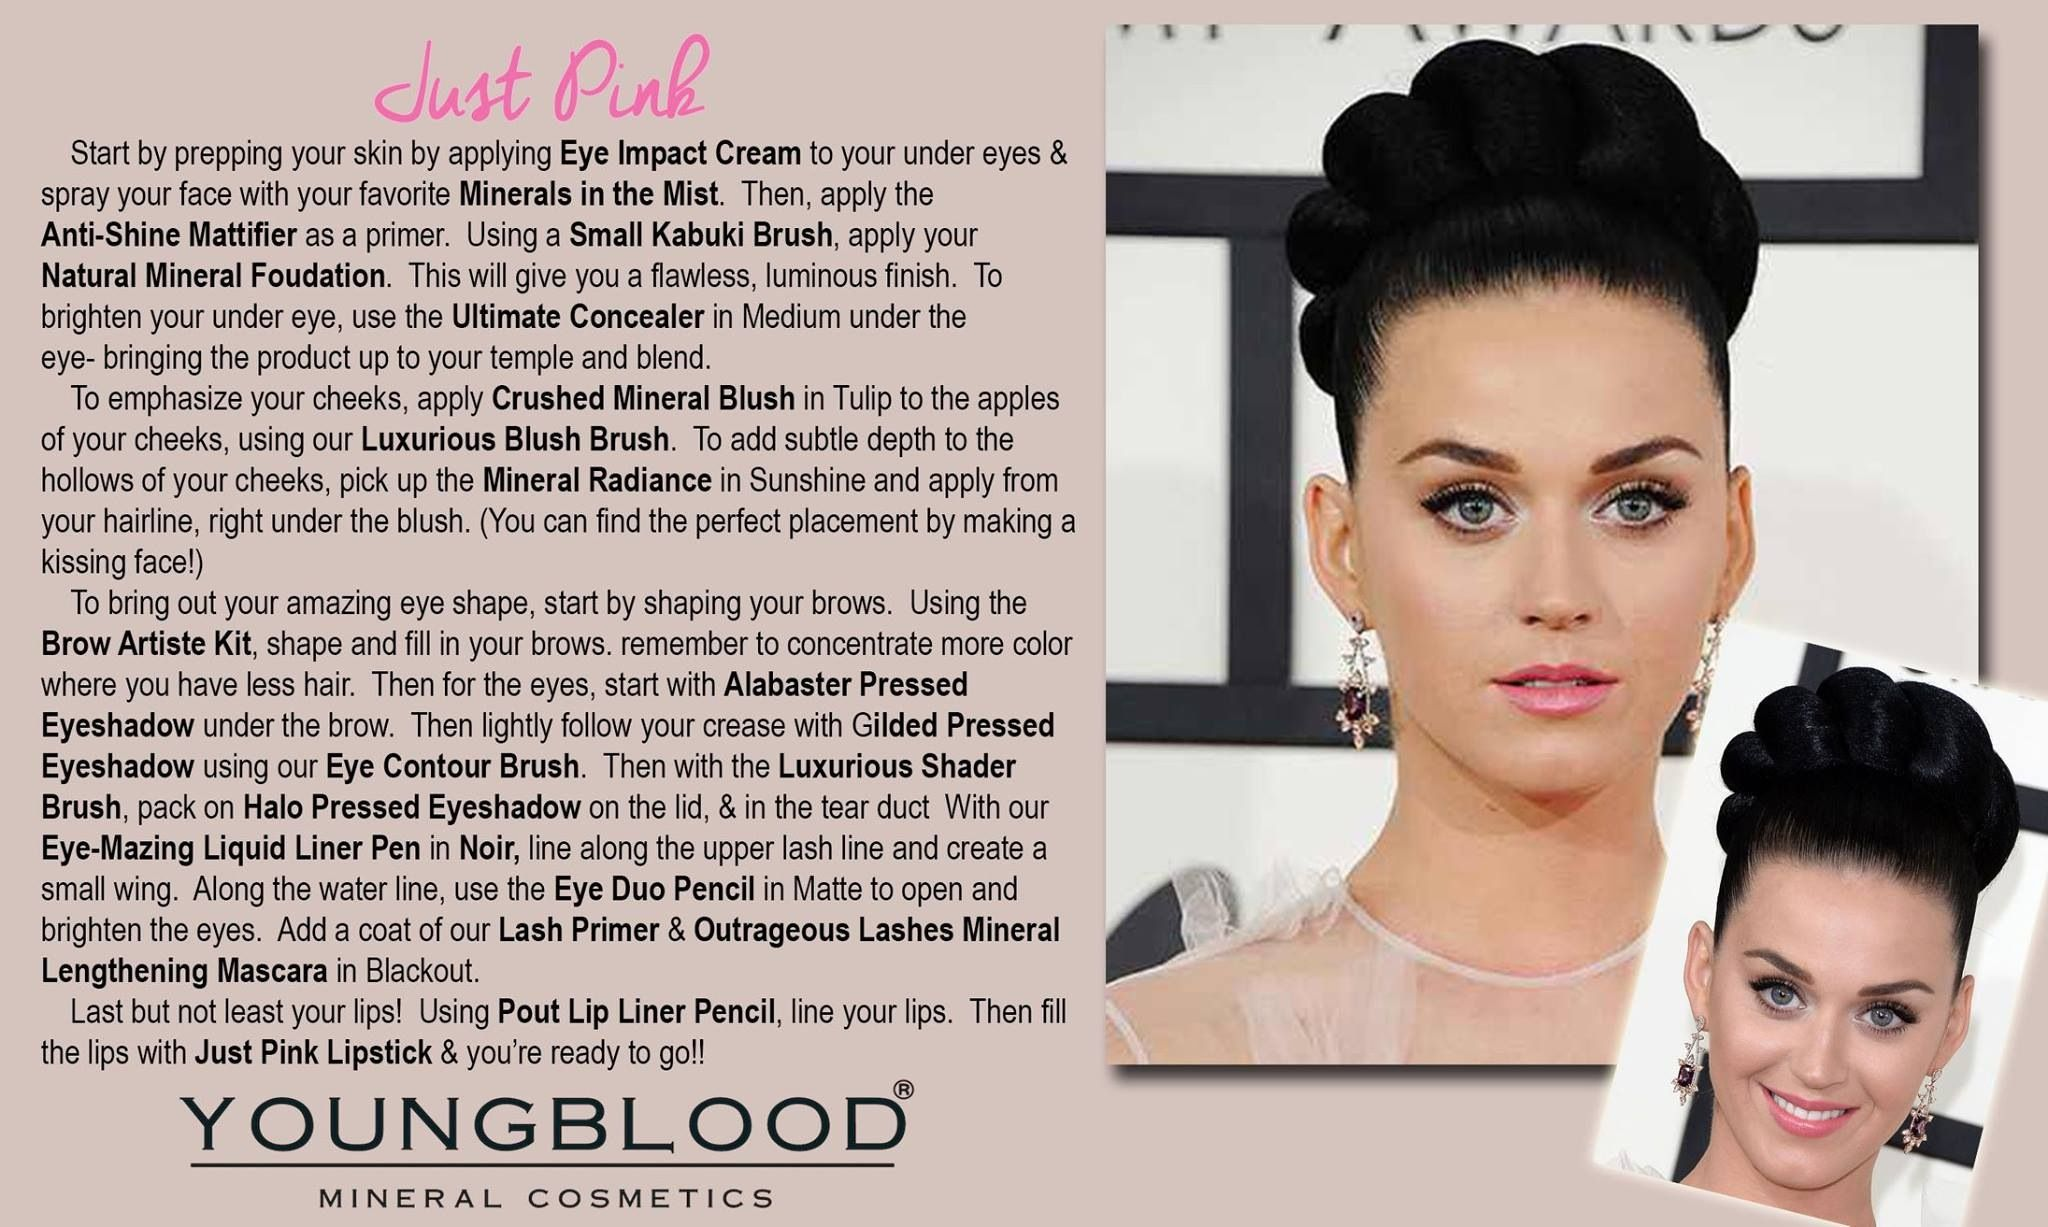 Mooie make up van Youngblood mineral cosmetics.